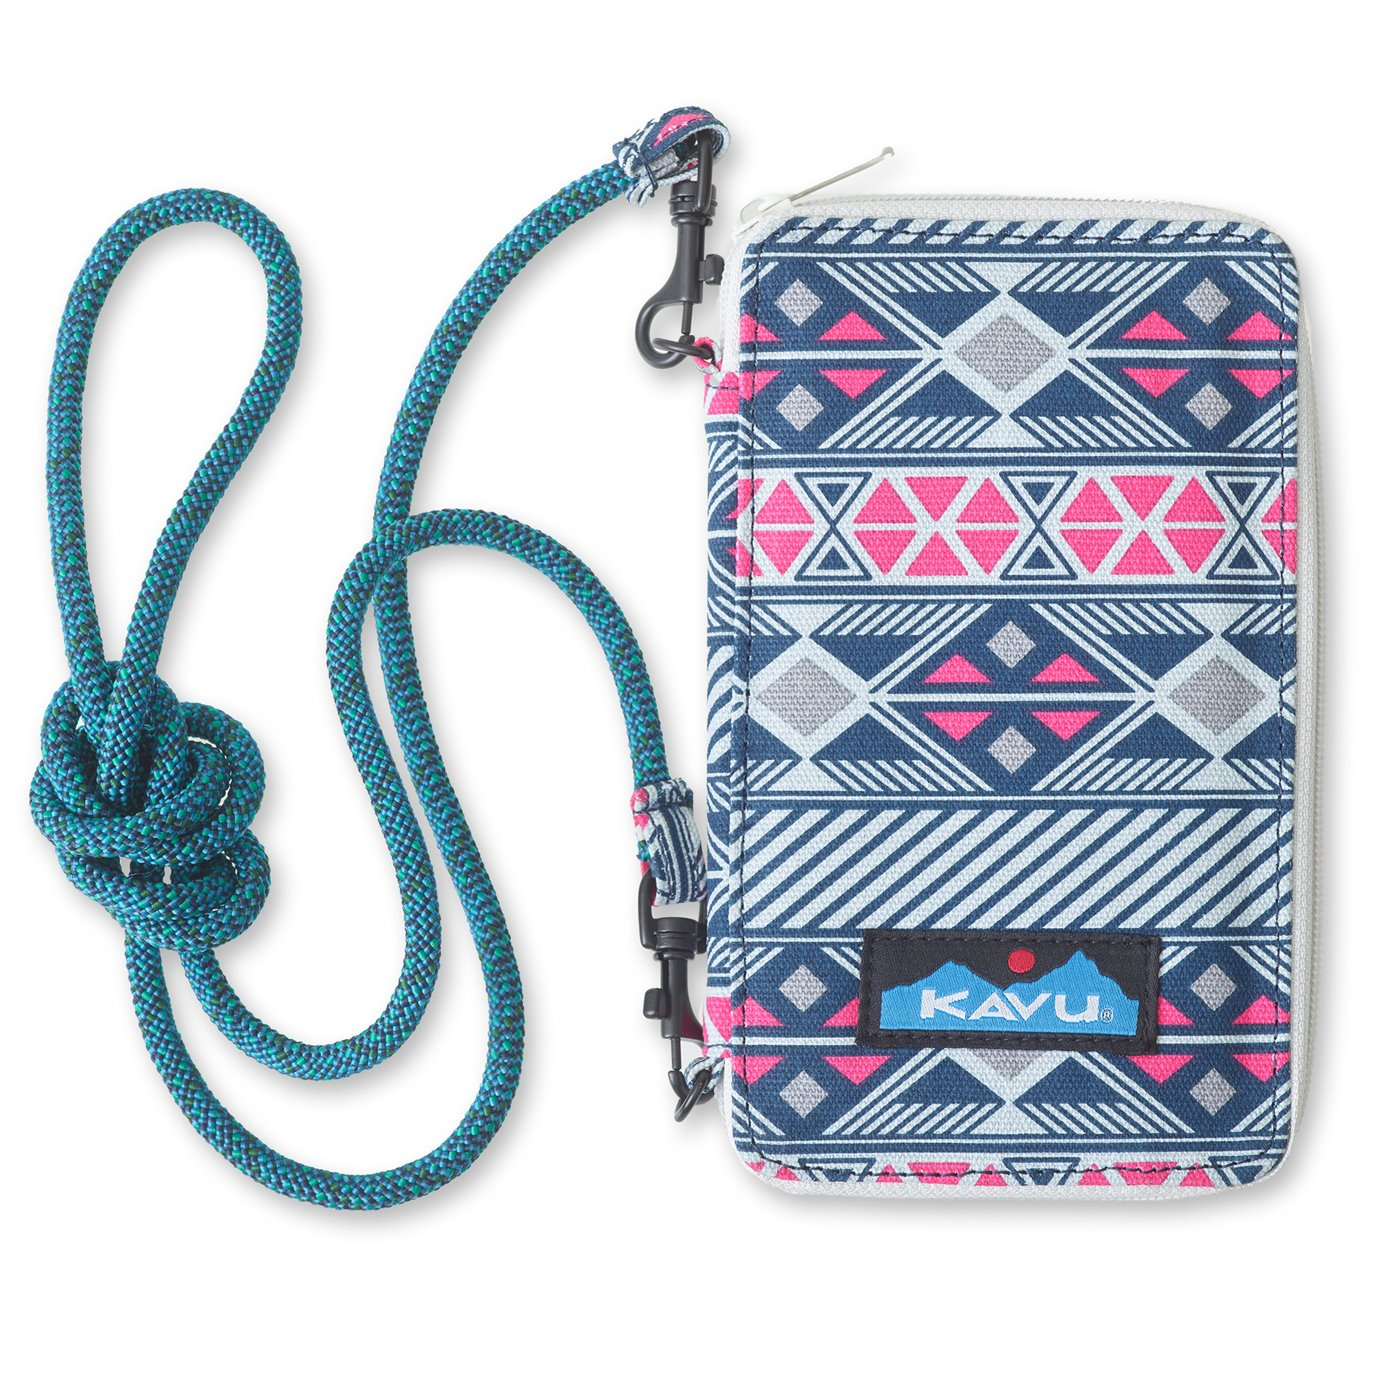 Kavu Gem Inlay Go Time Wallet/Crossbody